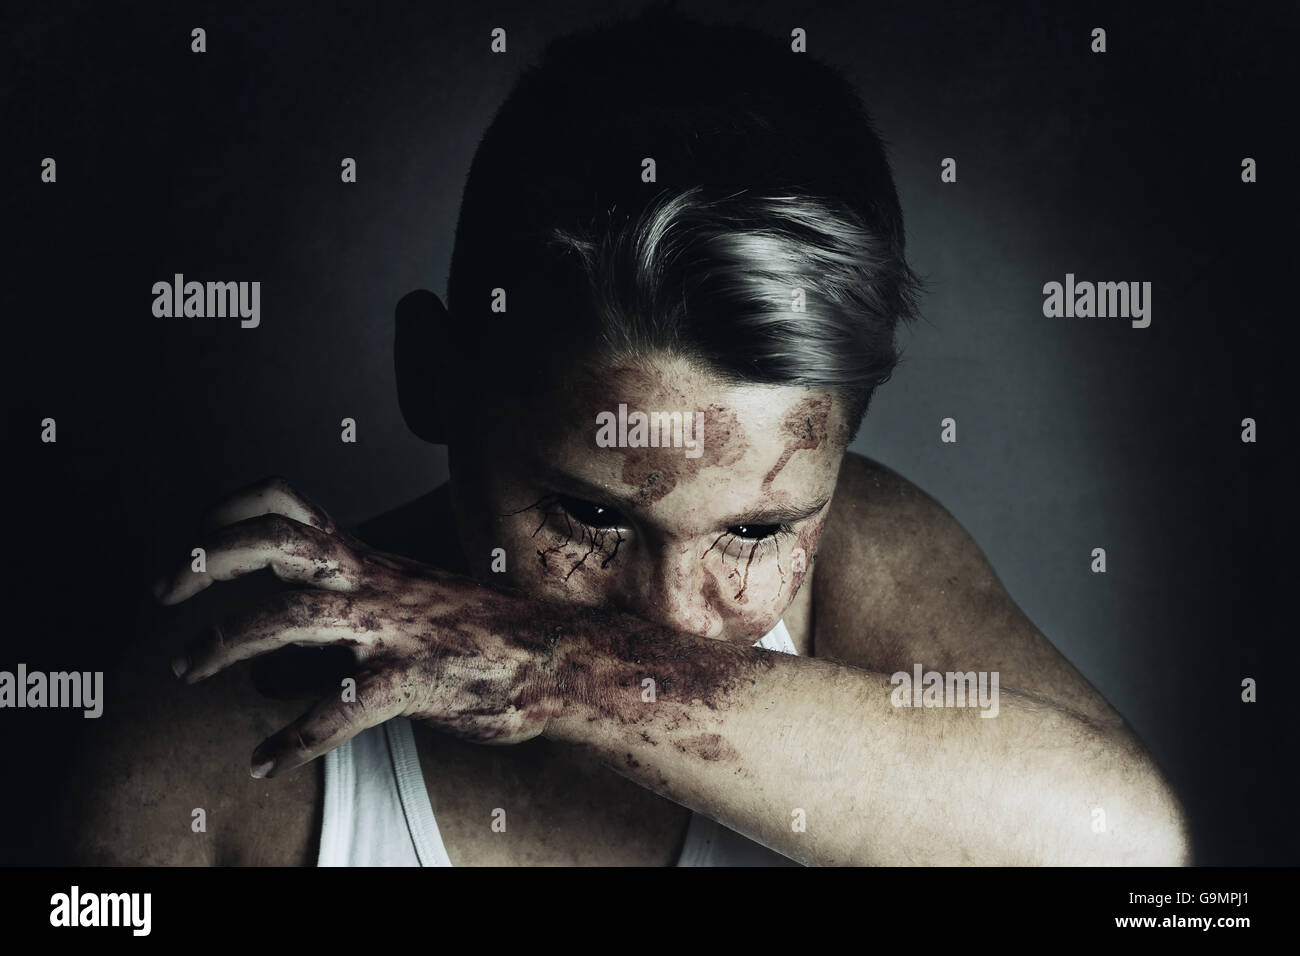 portrait of angry bloodsucker who wipe the mouth with bloody hand - Stock Image